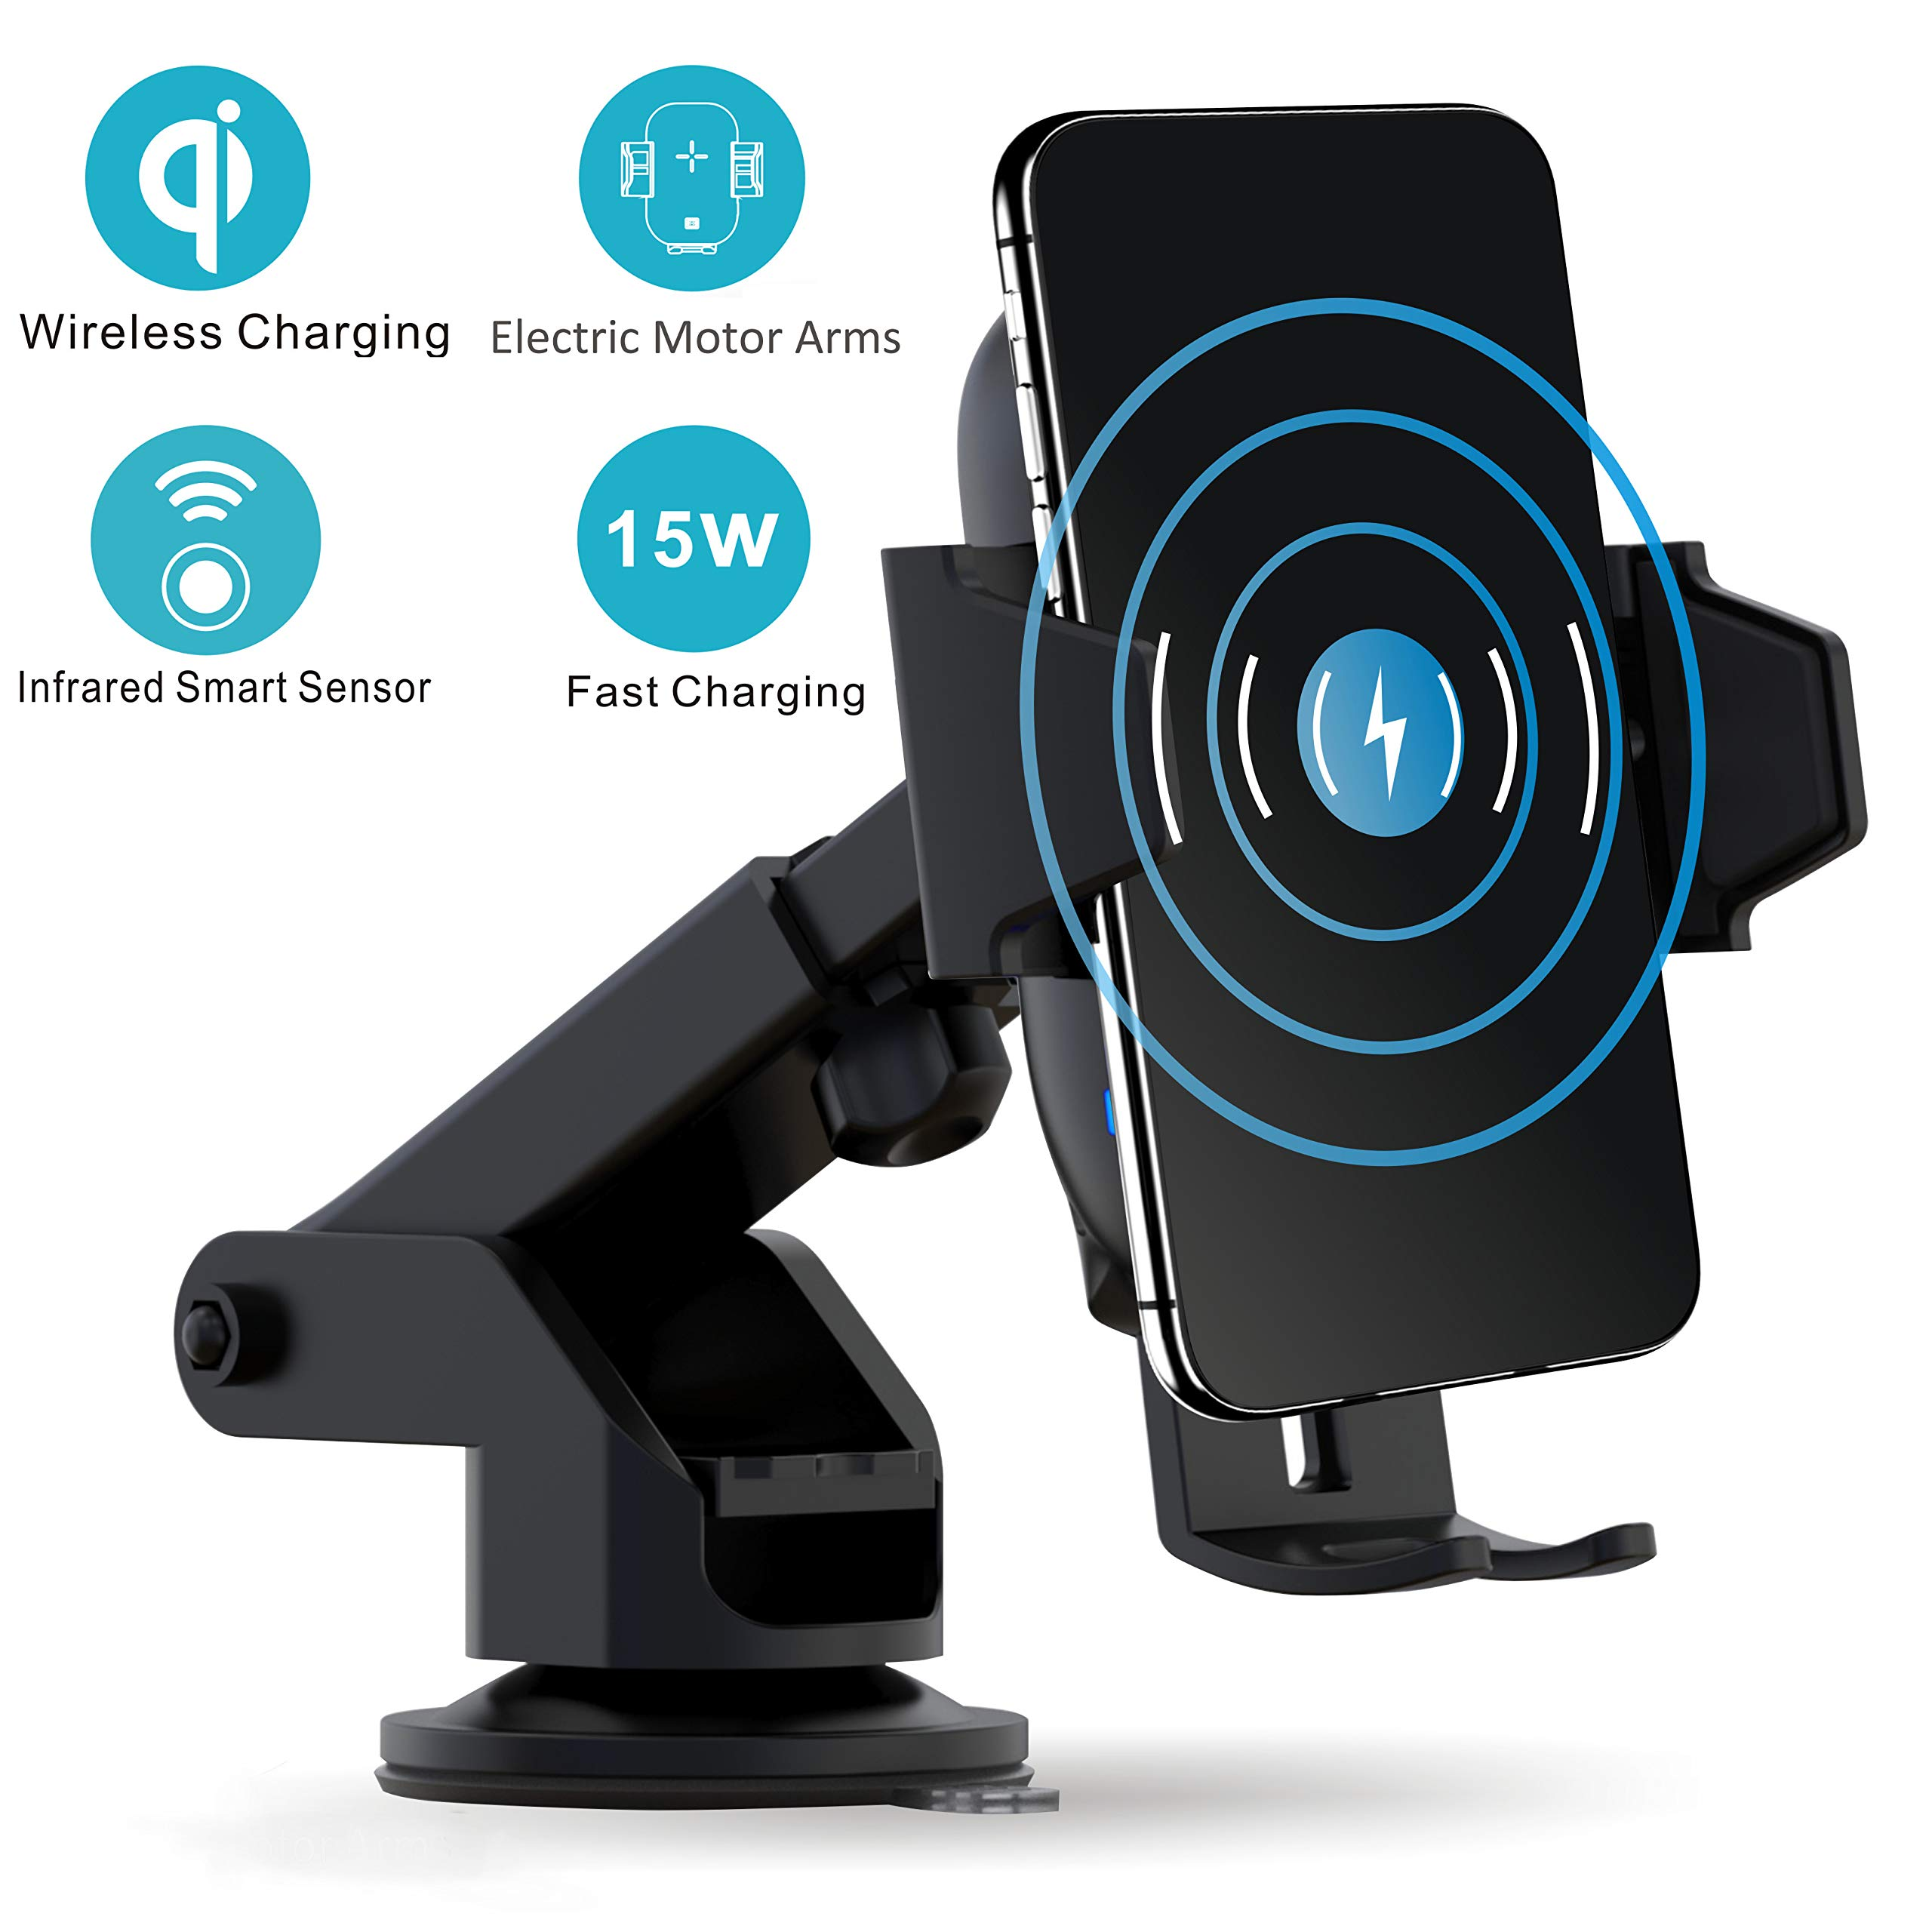 VORCSBINE Wireless Car Charger Mount,Auto-Clamping 15W/10W/7.5W Qi-Certified Fast Charging Mount(Patent), Air Vent Holder Compatible with iPhone 11/11 Pro/11 Pro Max/Xs MAX/XS/XR/X,Samsung S10/S10+ by VORCSBINE